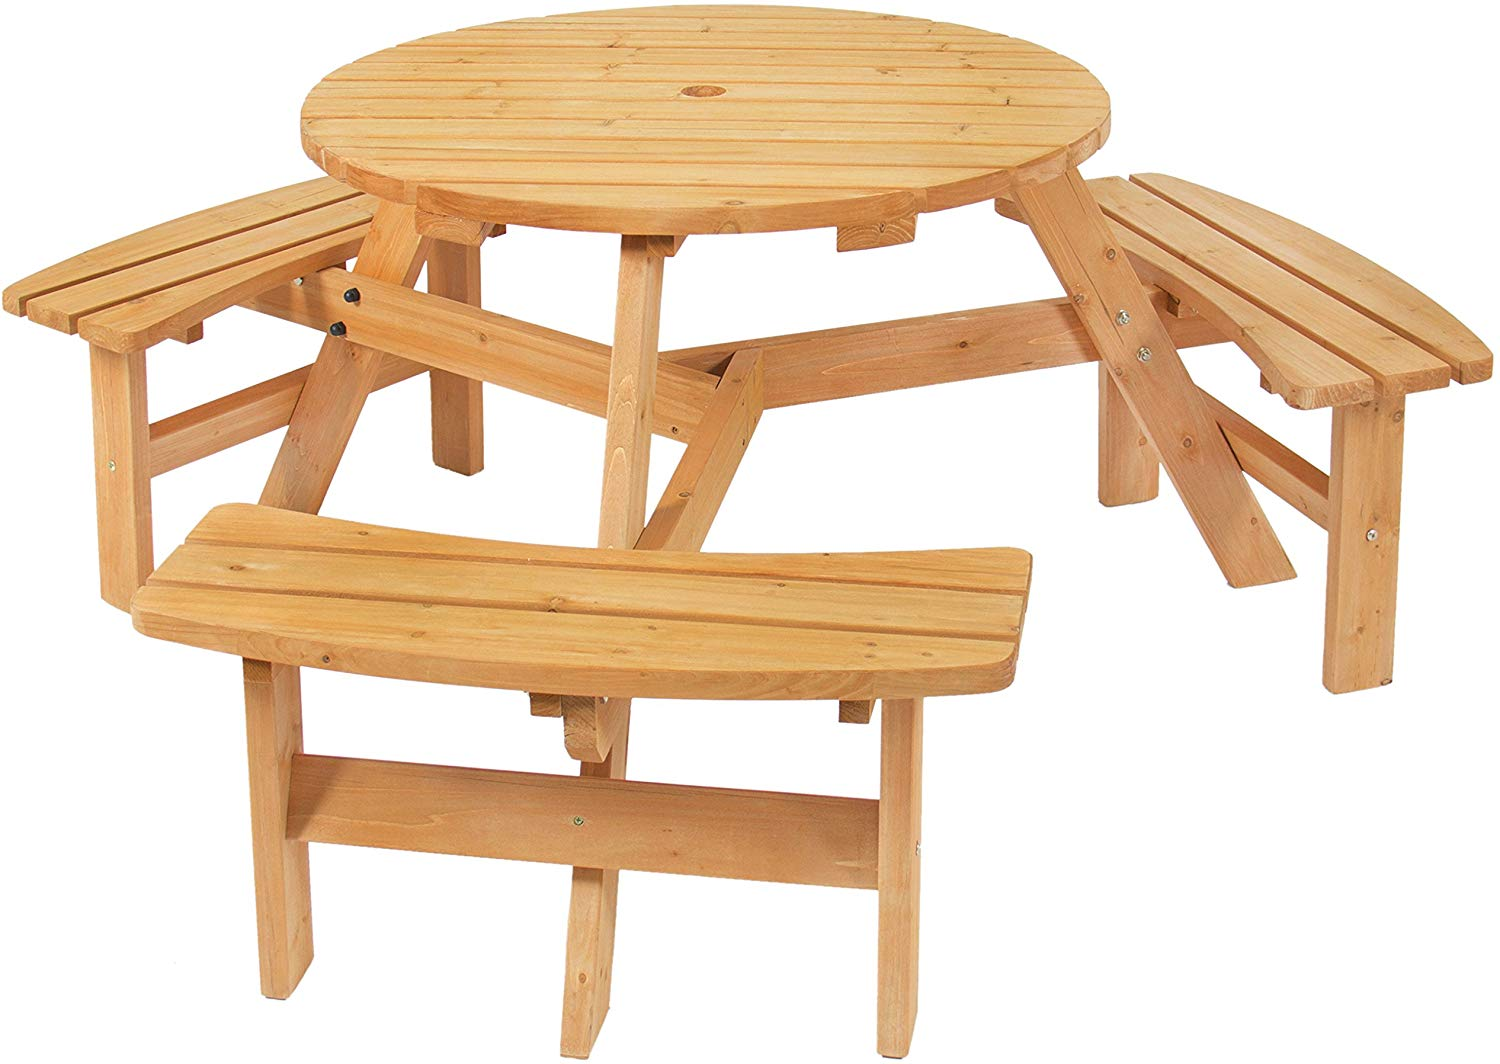 The Best Choice Products Natural Finish 6 Person Wood Picnic Table Set